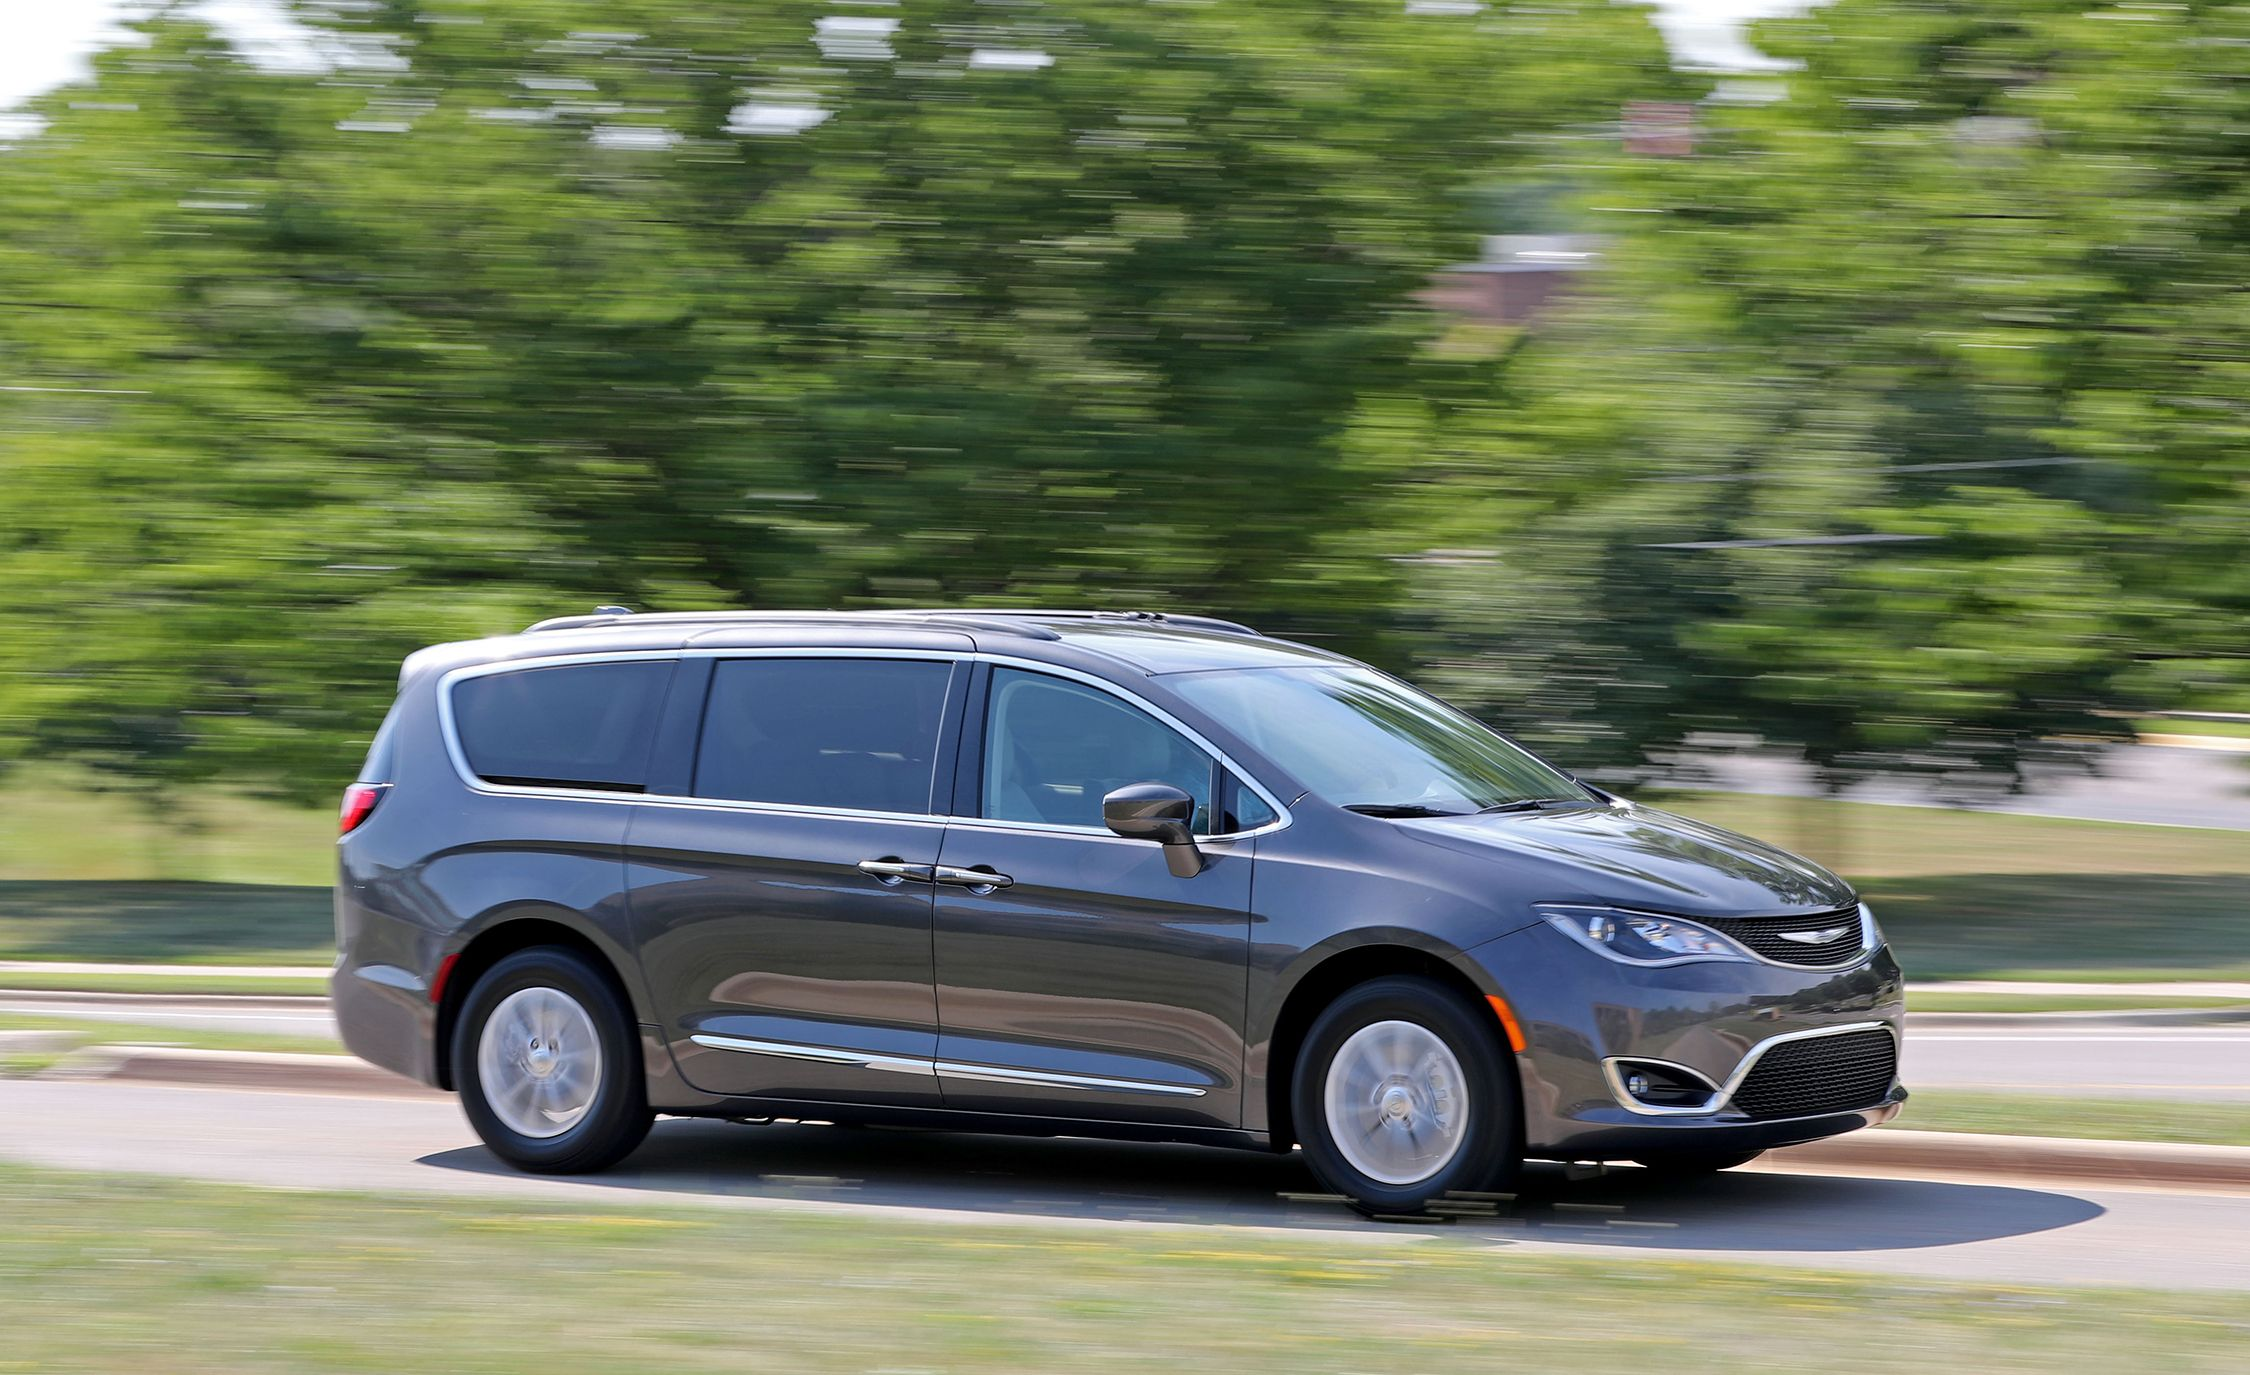 2017 Chrysler Pacifica Engine And Transmission Review Car Driver 4 0 Diagram